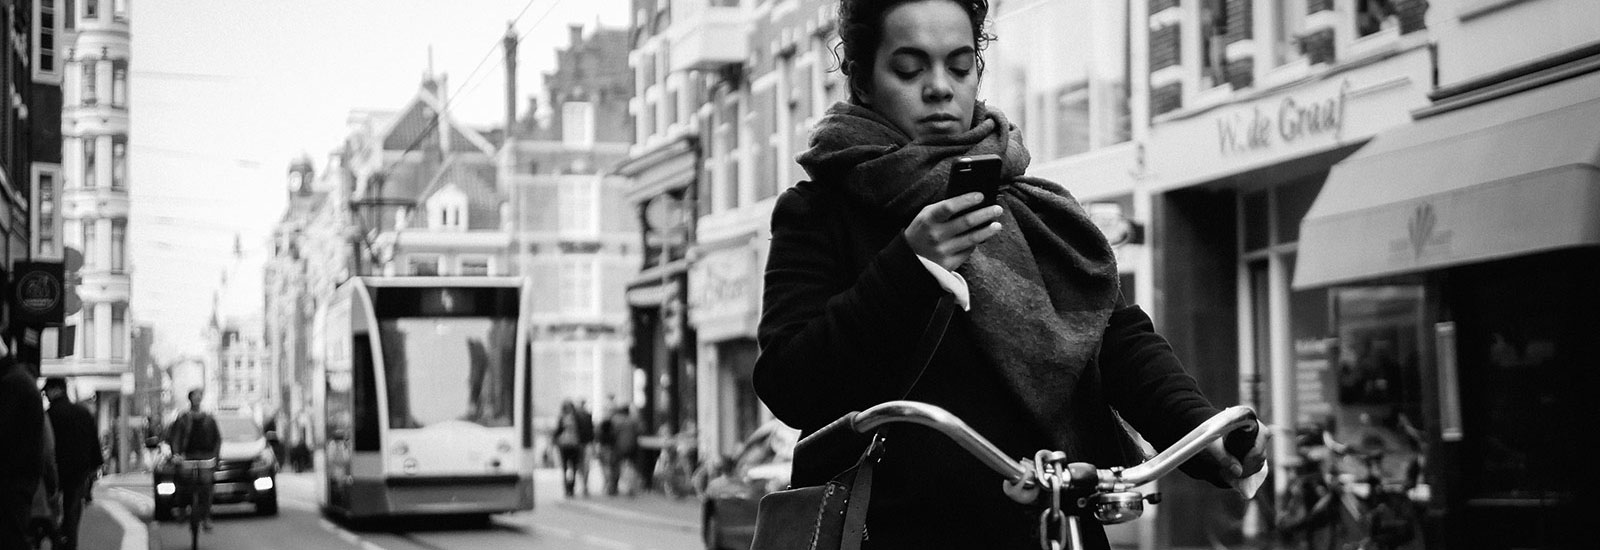 Amsterdam bans mobile phones